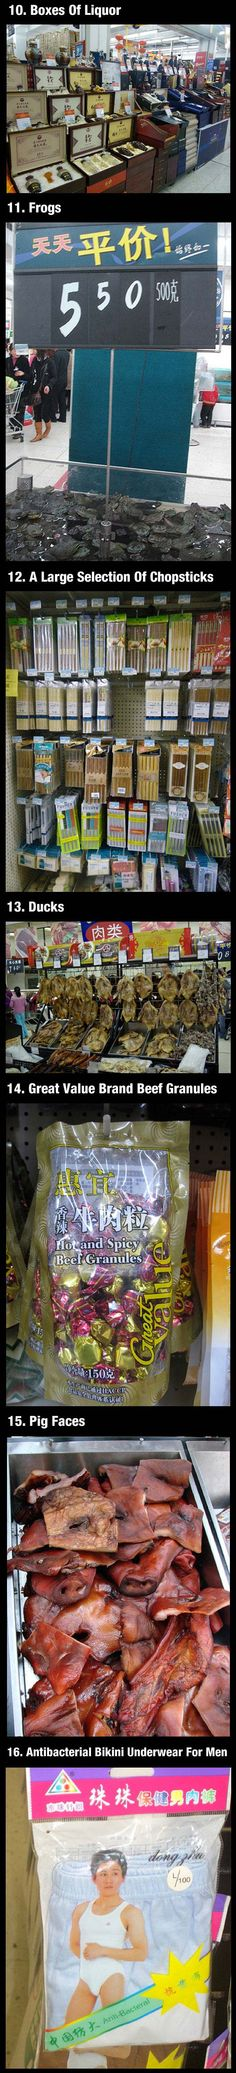 Walmart in China - You sell what?